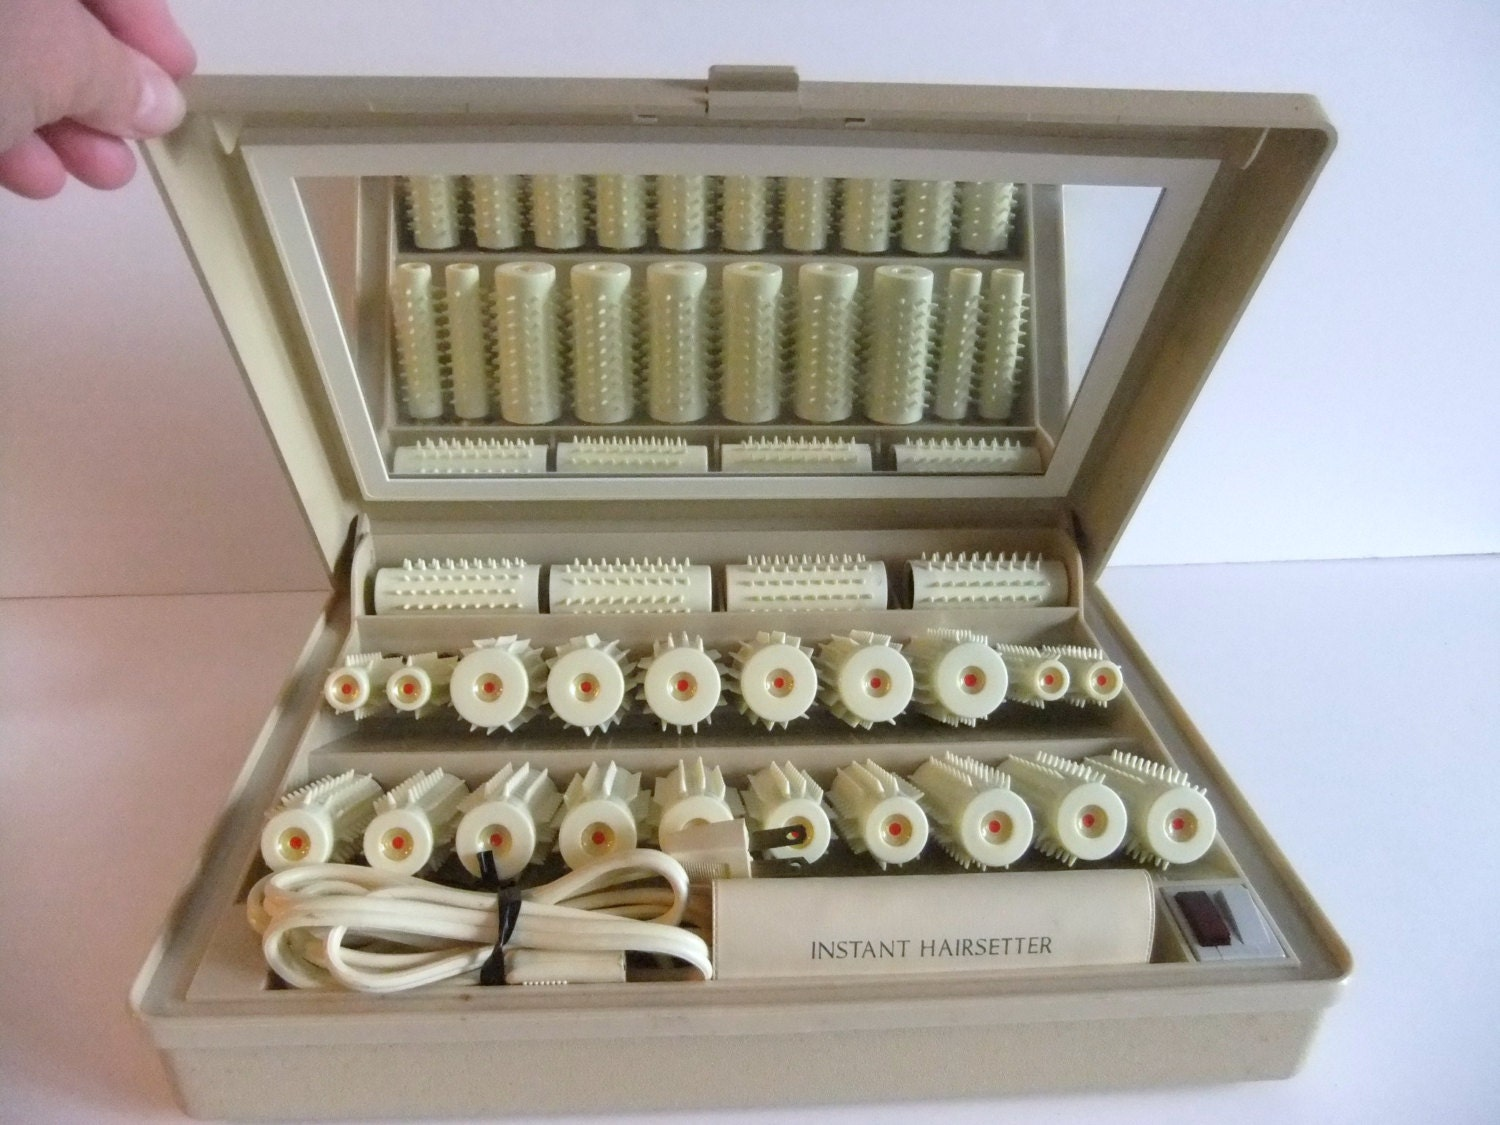 Vintage Instant Hairsetter By Clairol Electric Rollers Model